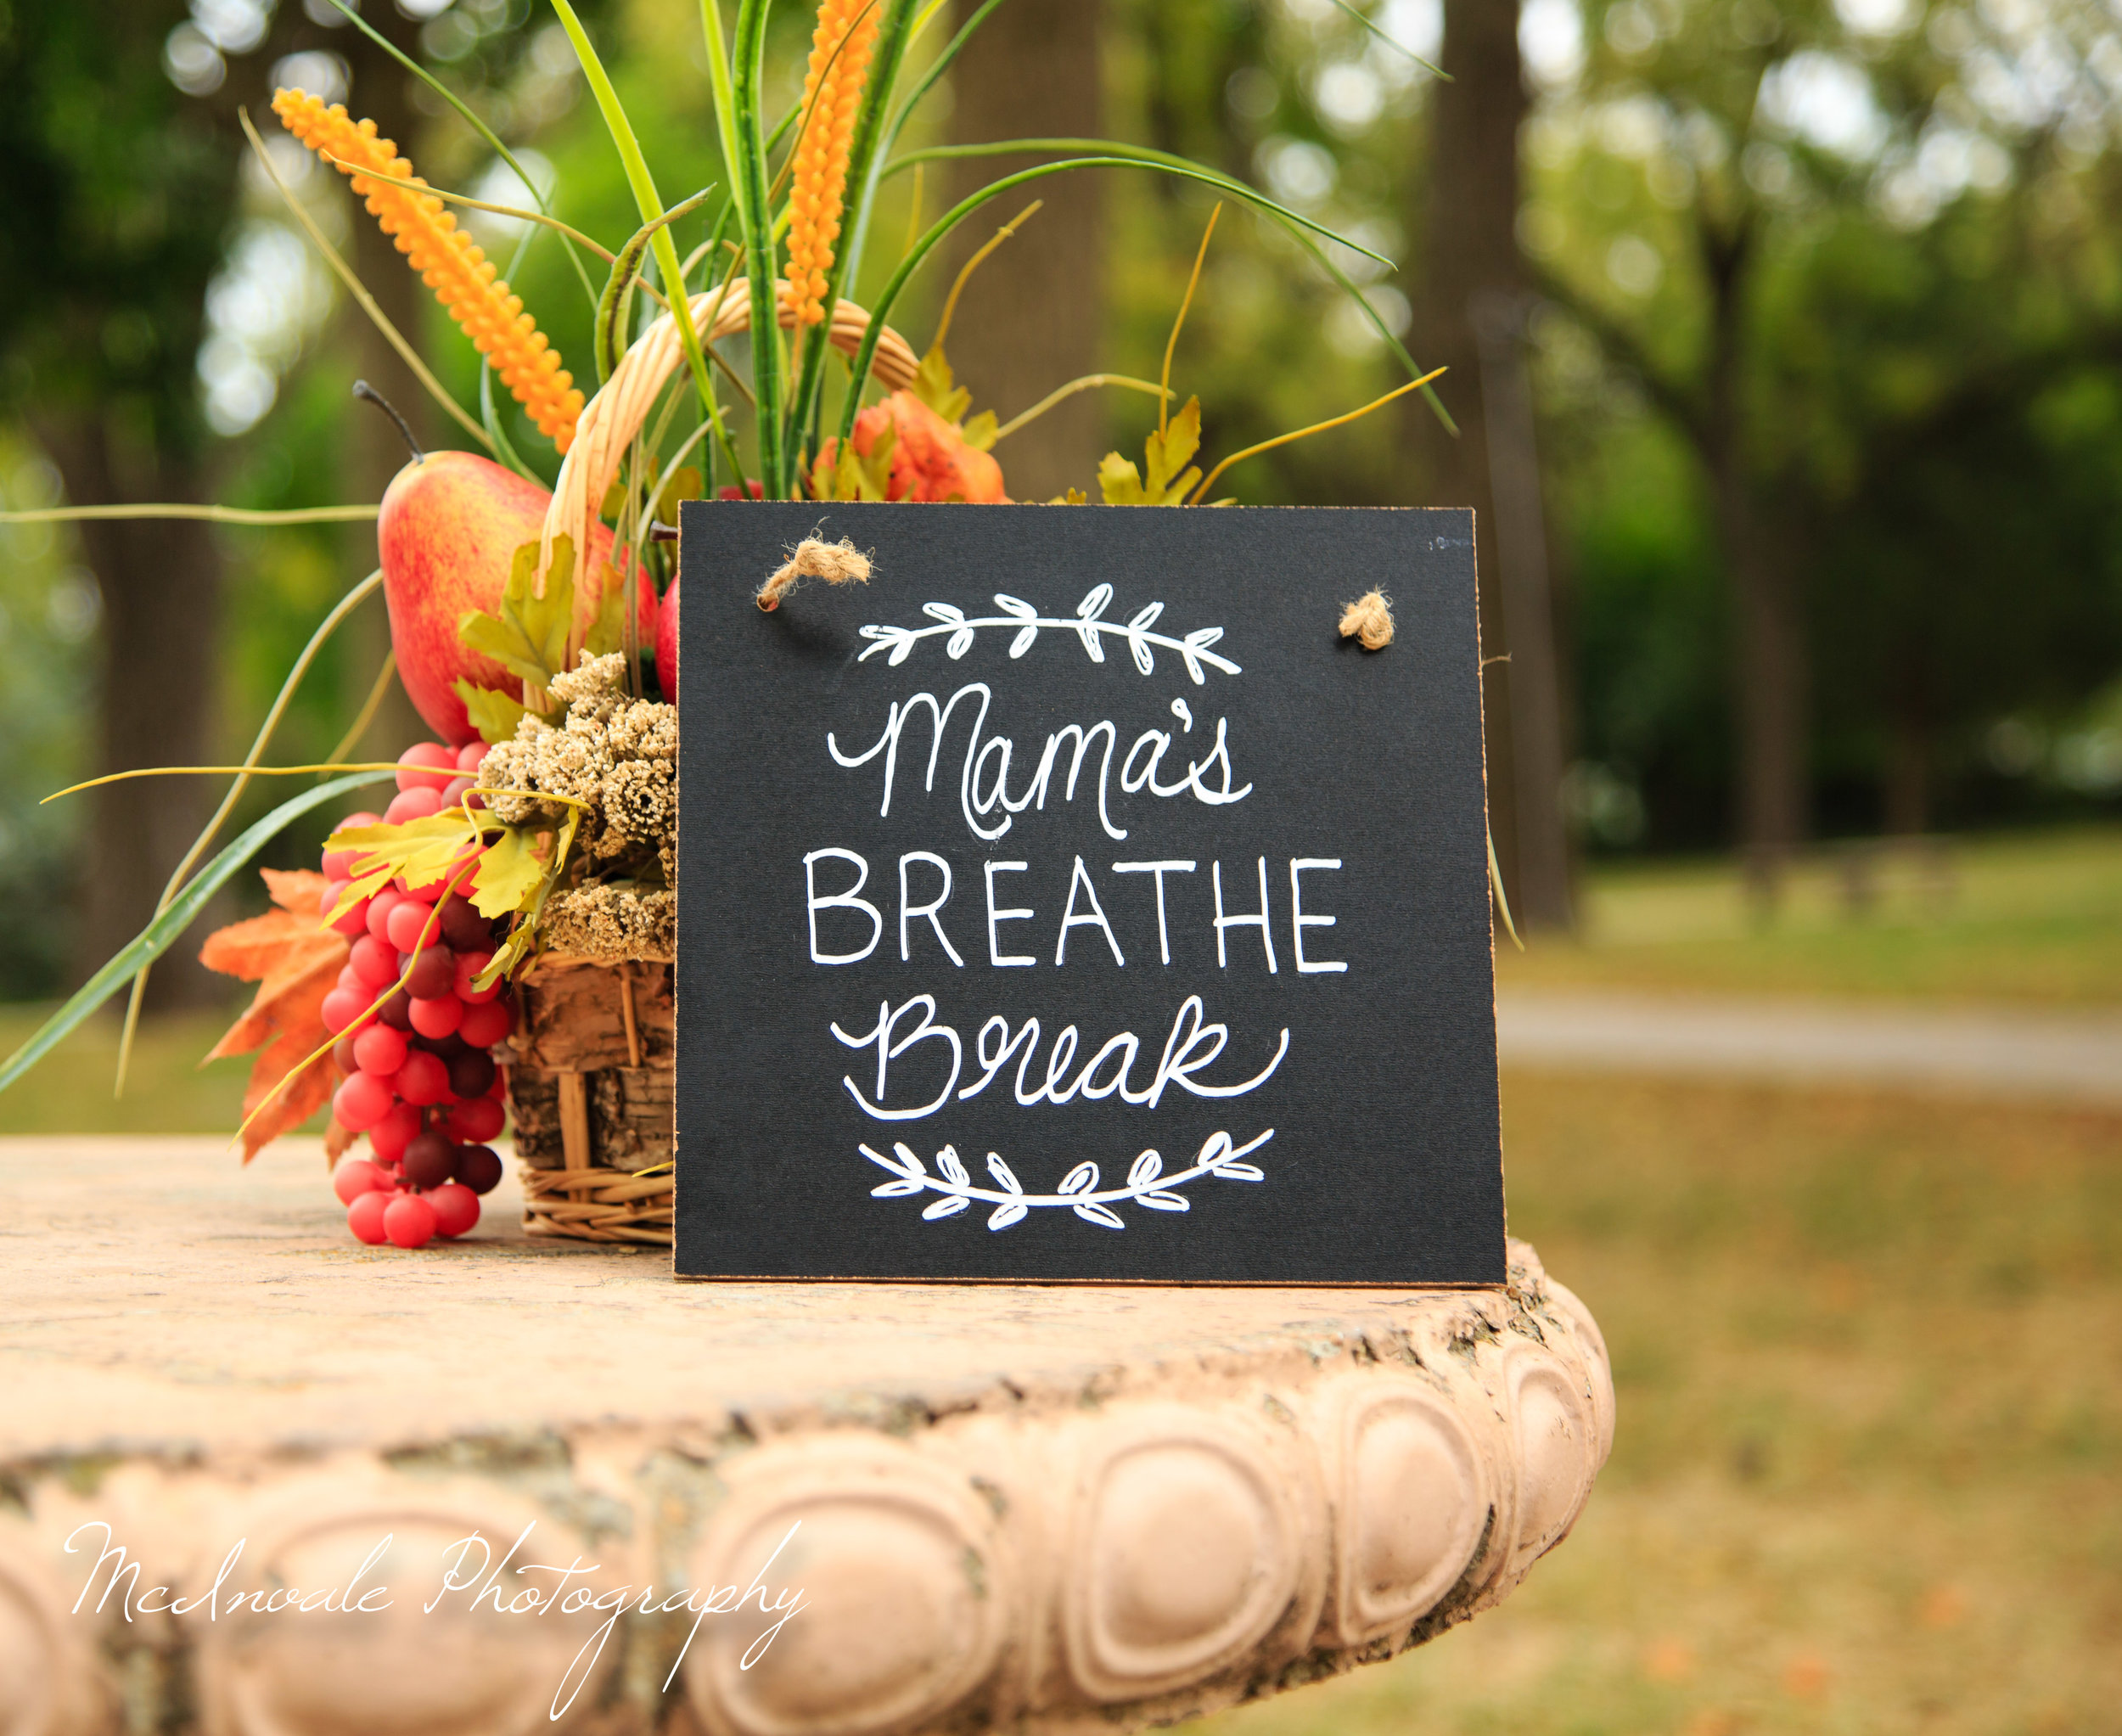 Mama's Breathe Break - Fundraising event for the Cystic Fibrosis Foundation - Sponsored by Bubba's Breath Team